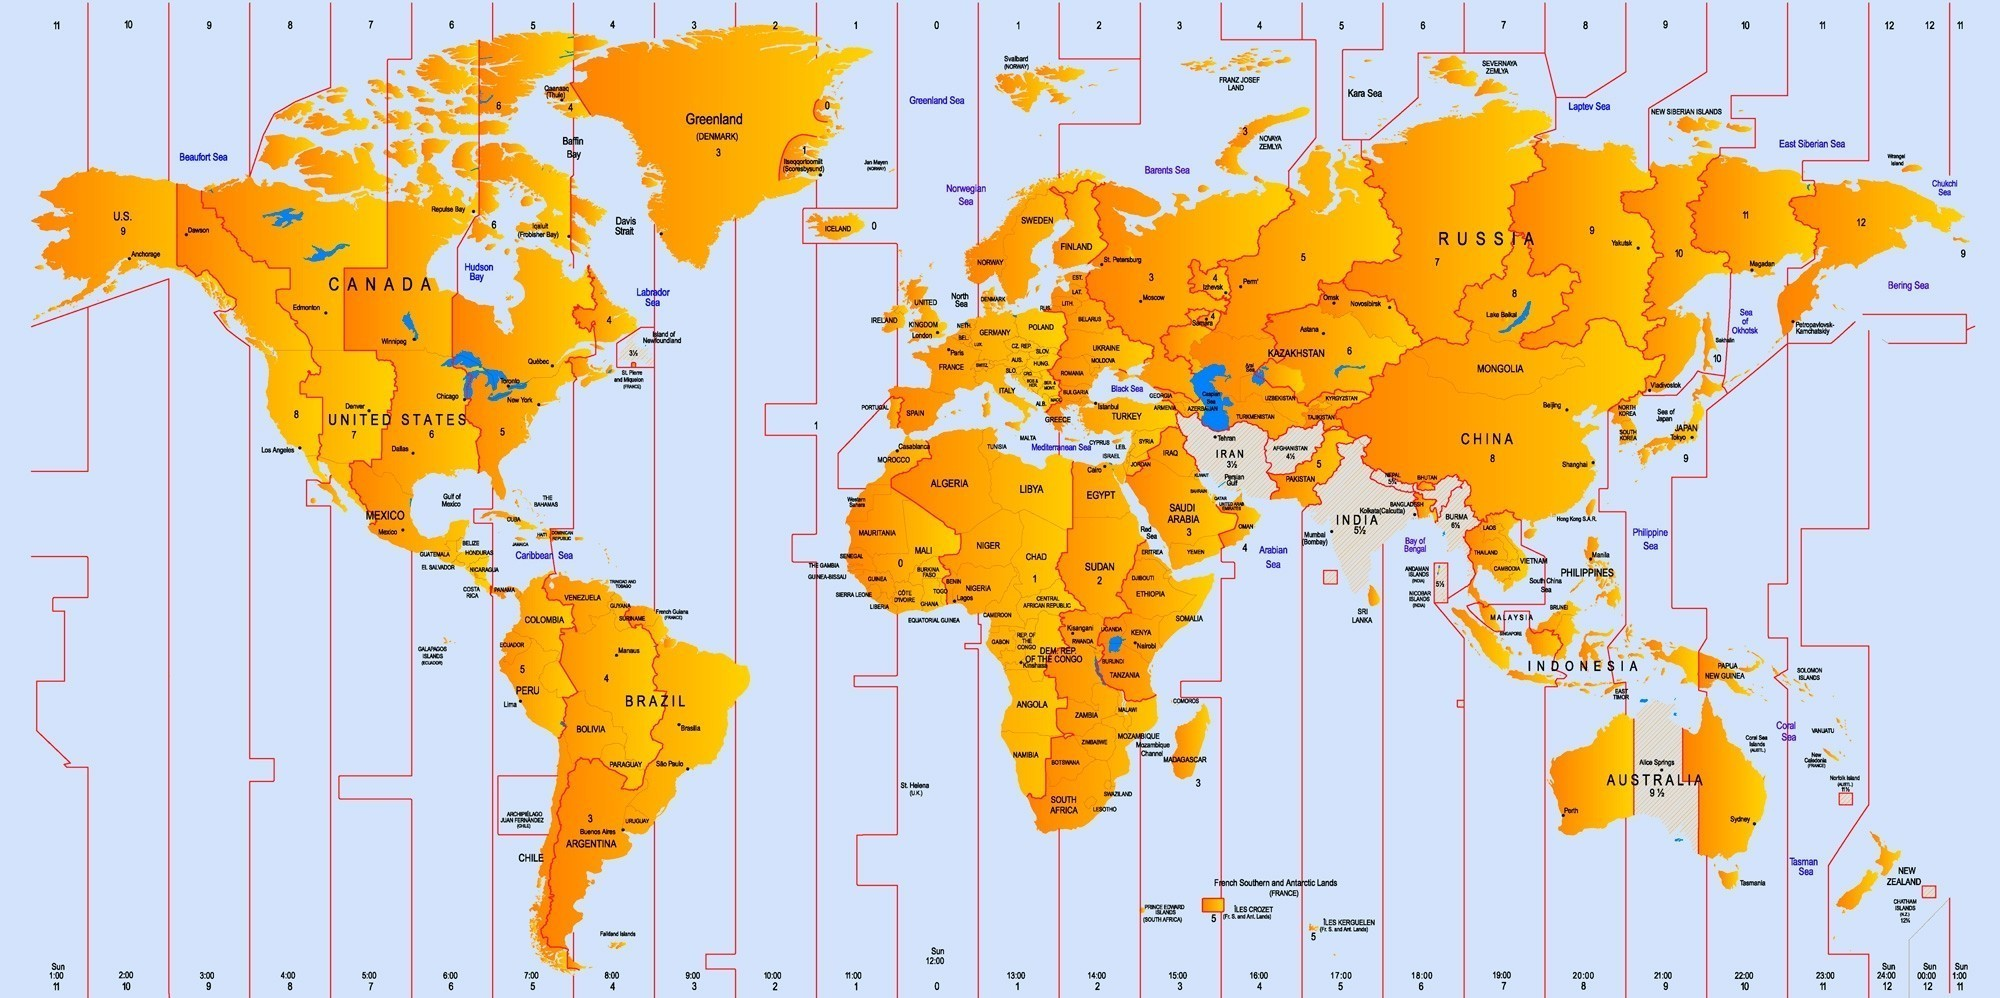 Time Zone Map of The World | World Time Zones Map